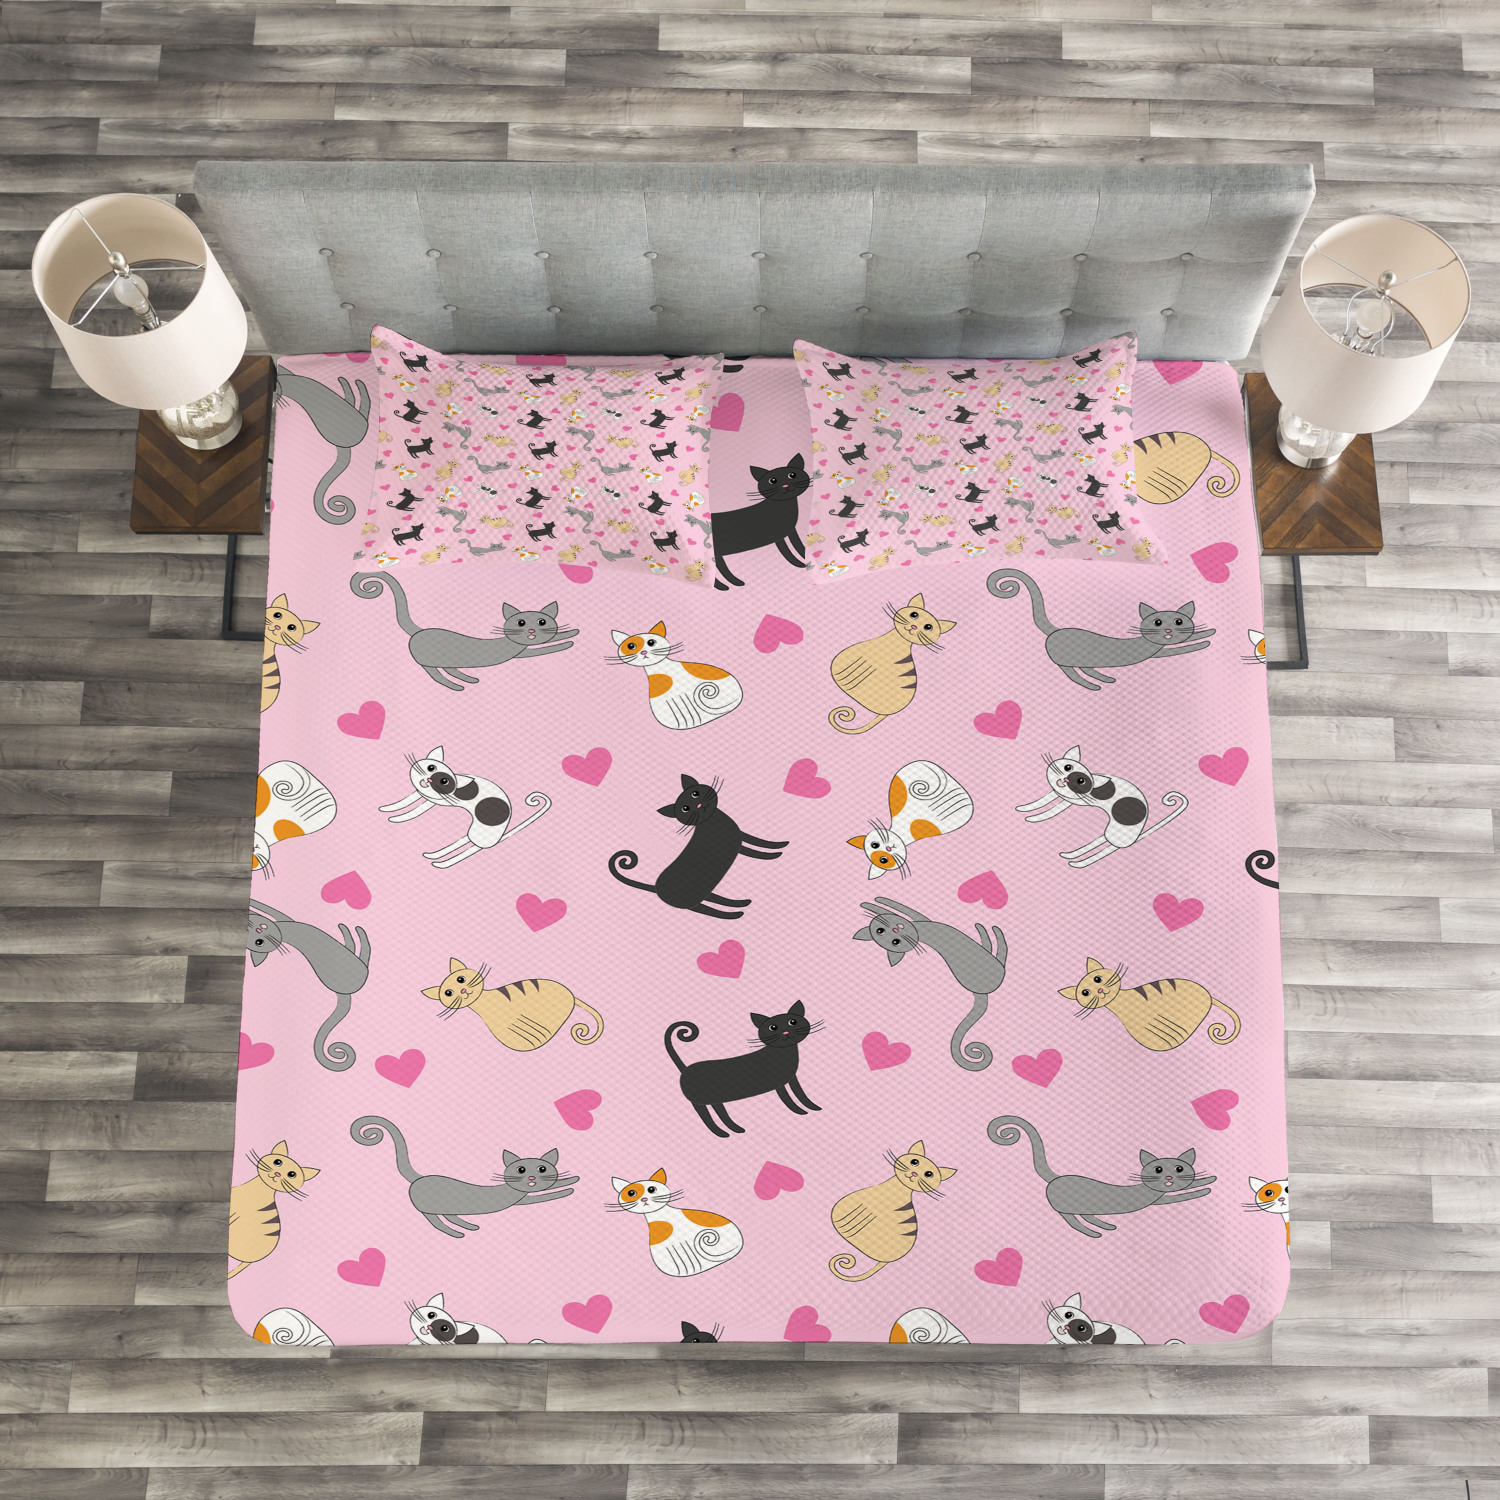 Kitty Quilted Bedspread & Pillow Shams Set, colorful Different Cats Print